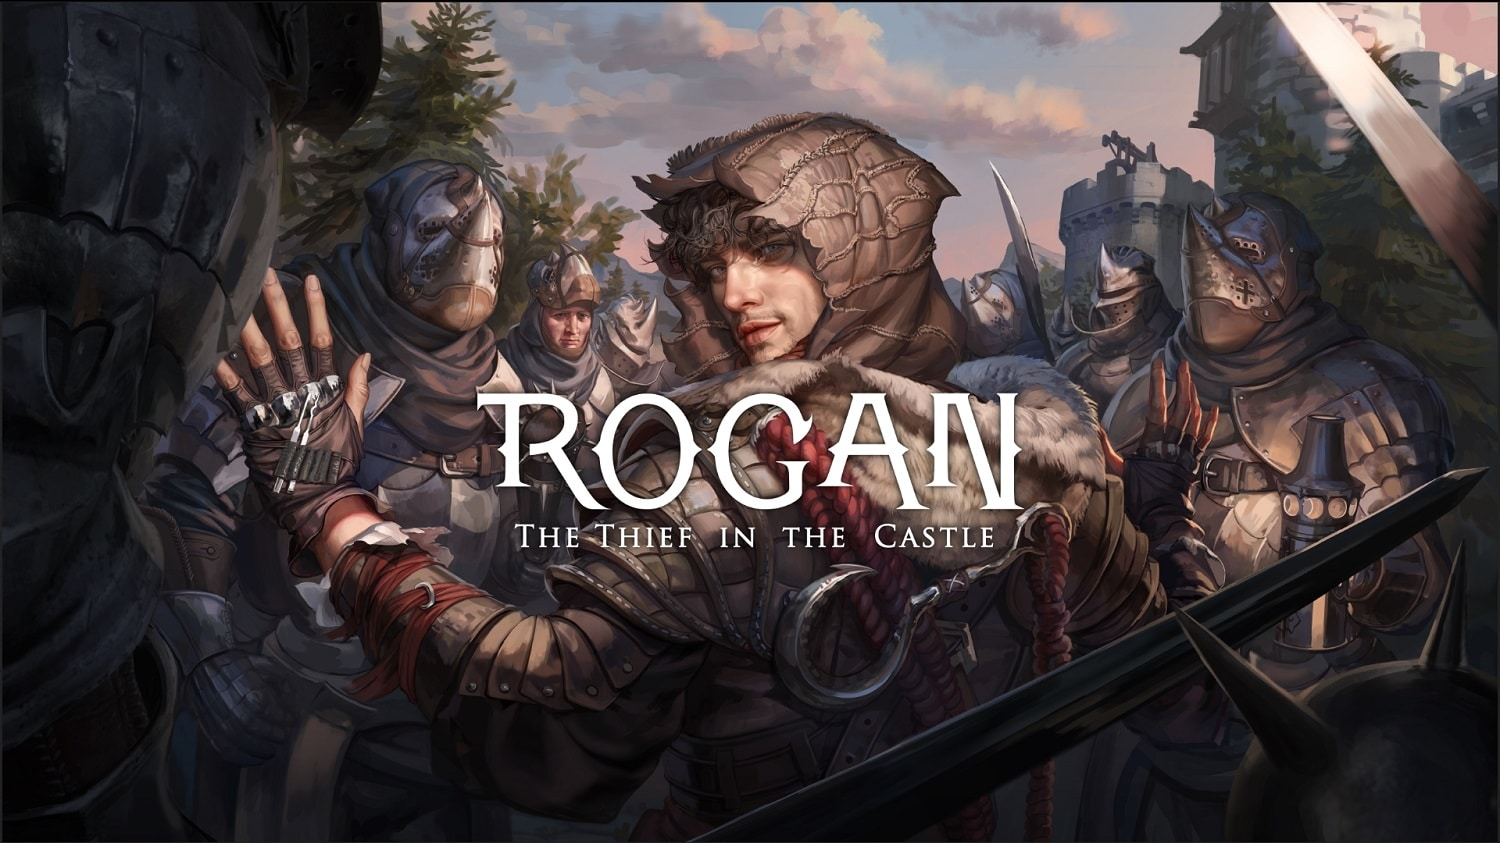 ROGAN: The Thief In The Castle VR